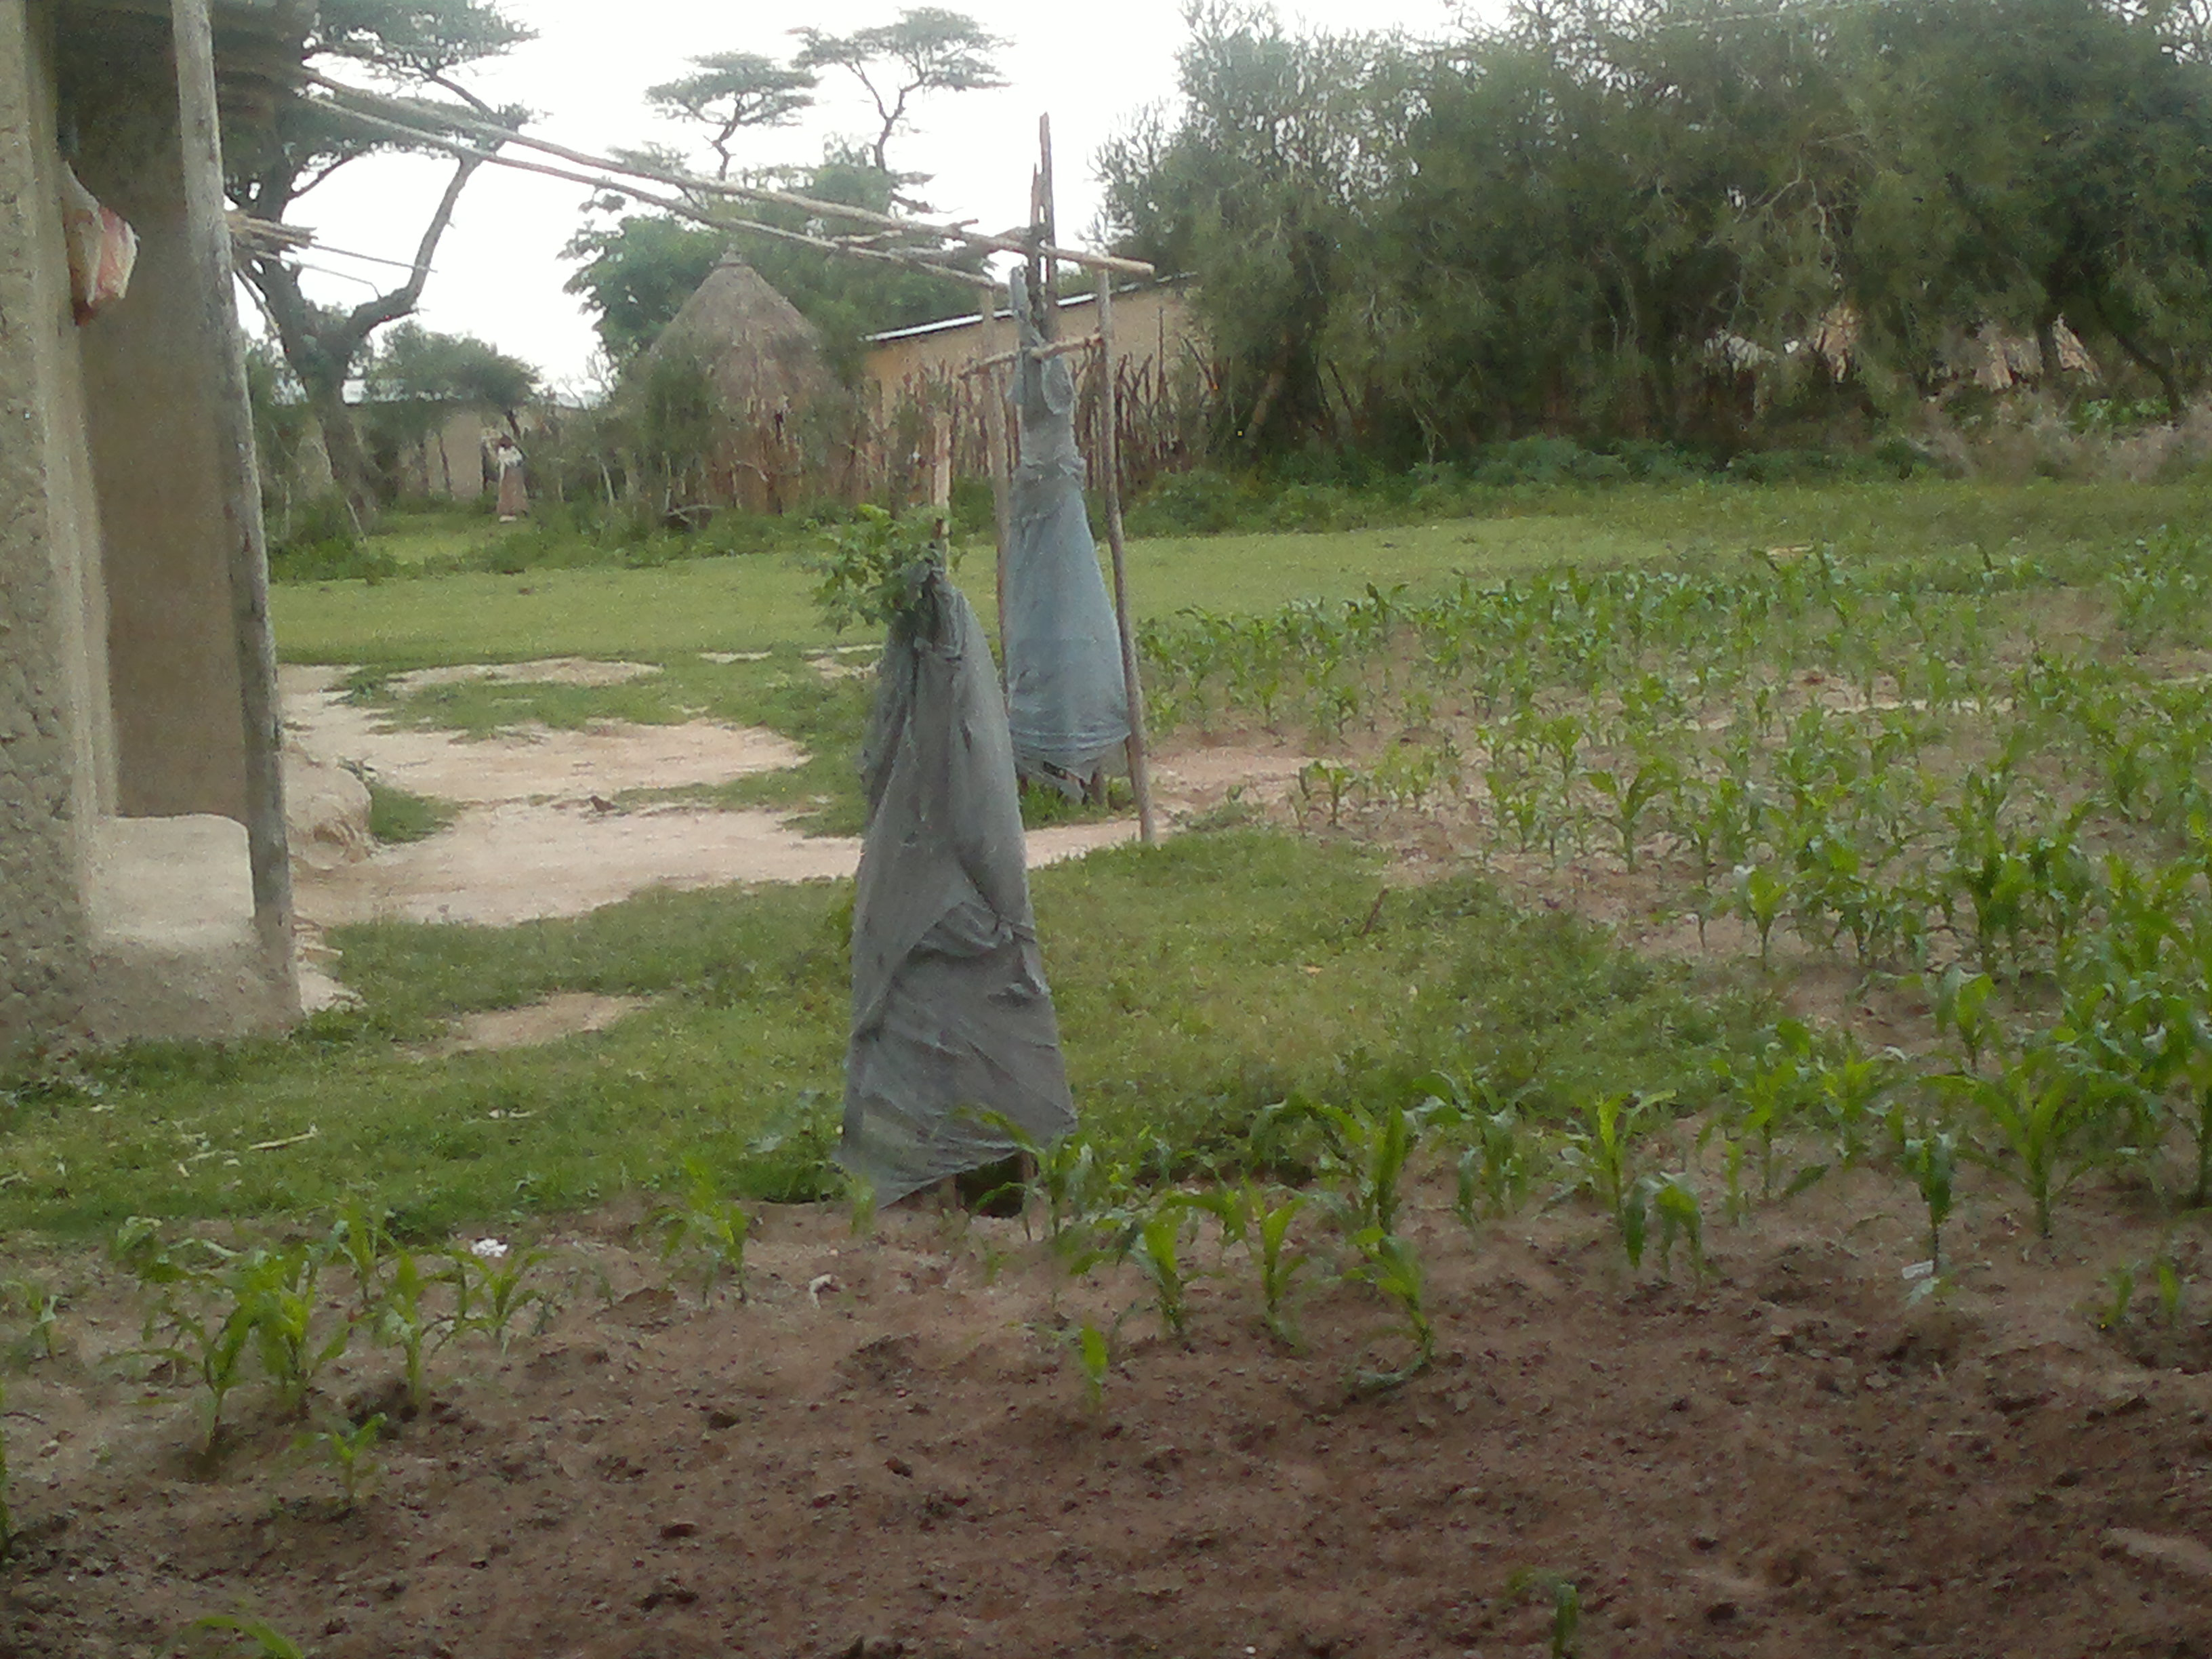 Bednets used to keep bugs or cattle away from trees